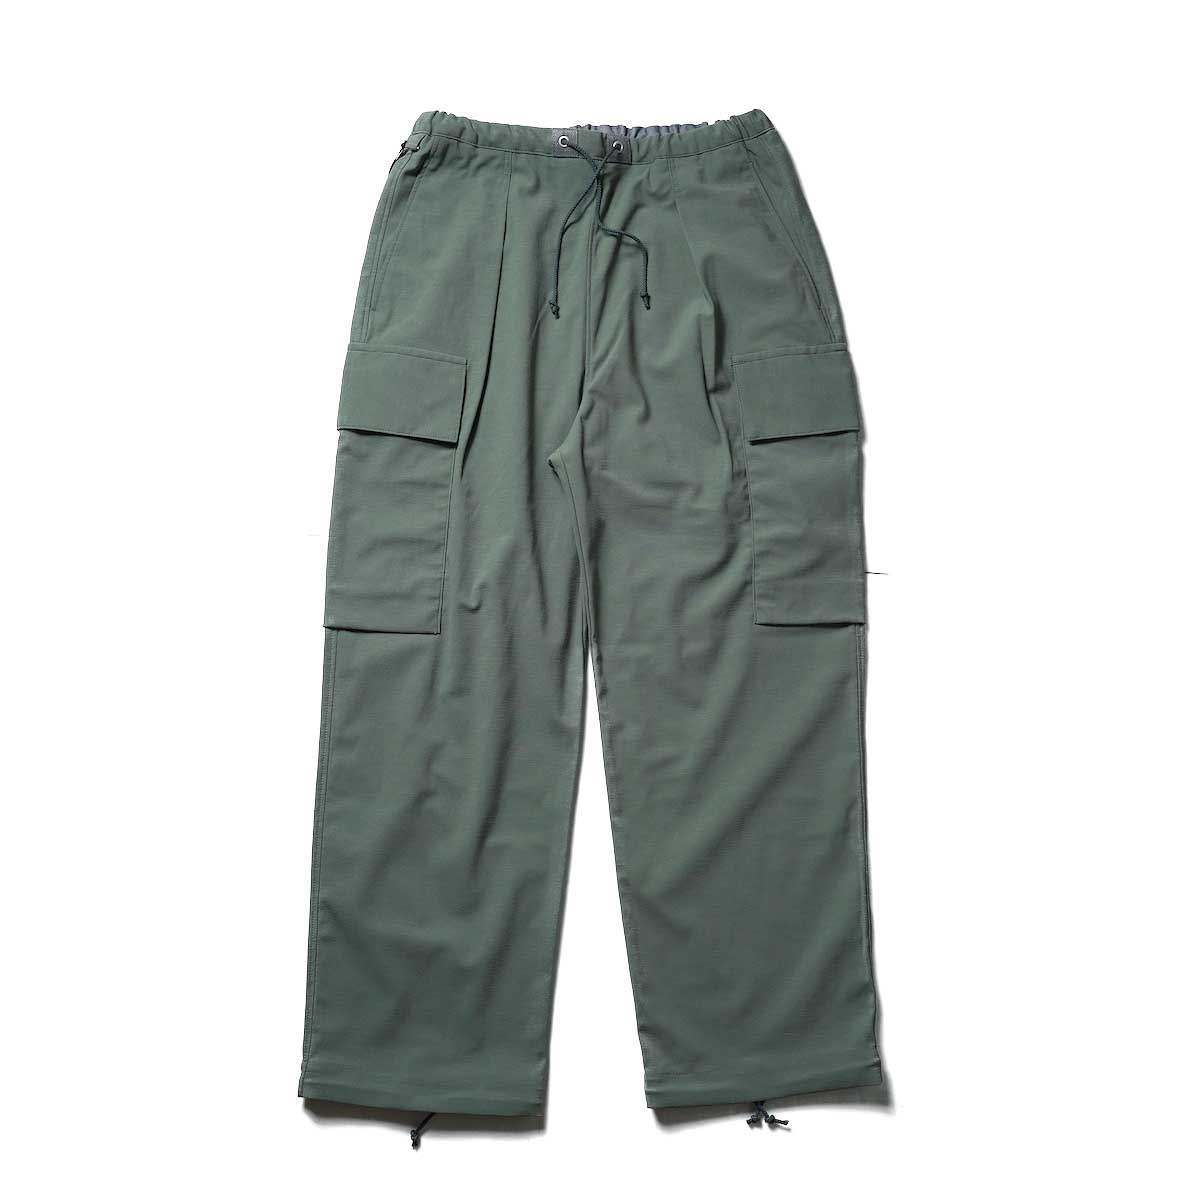 CURLY / PROSPECT CARGO TROUSERS (Olive)